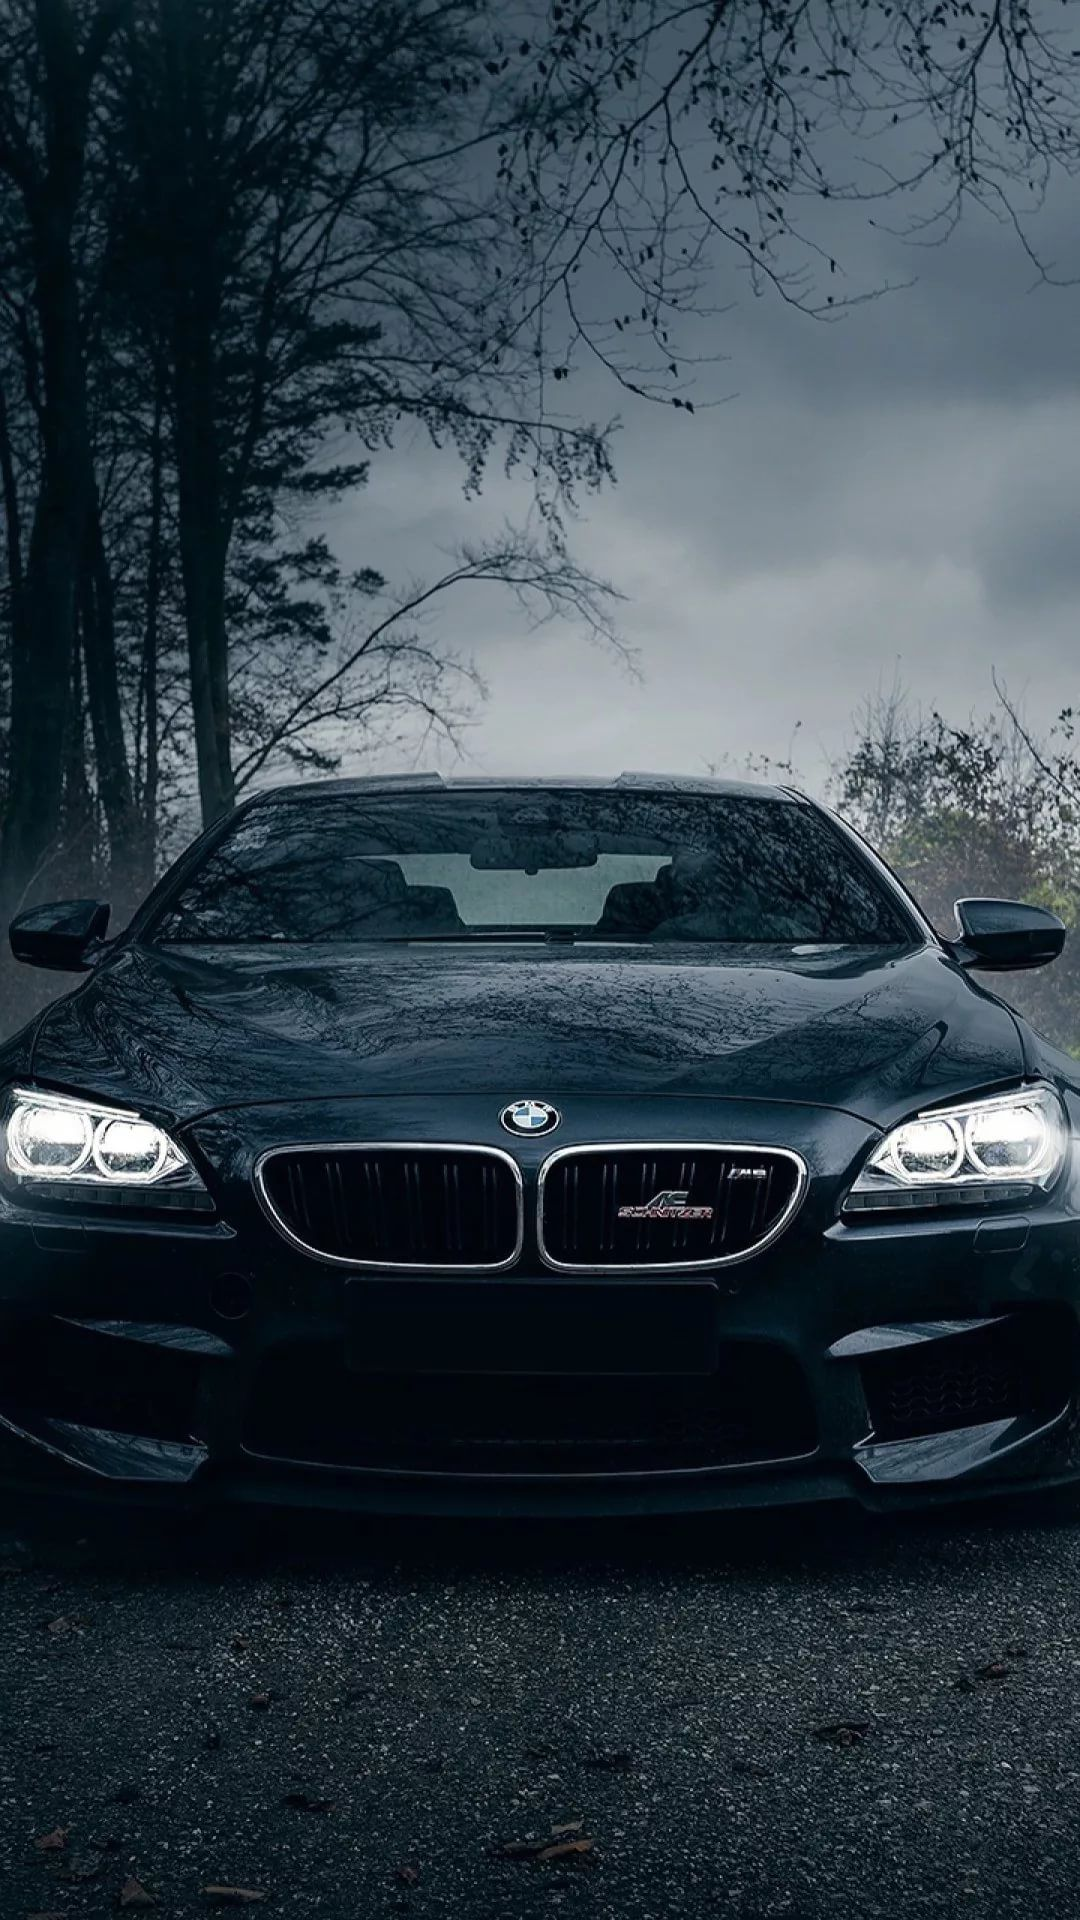 Bmw M5 E60 wallpaper for android